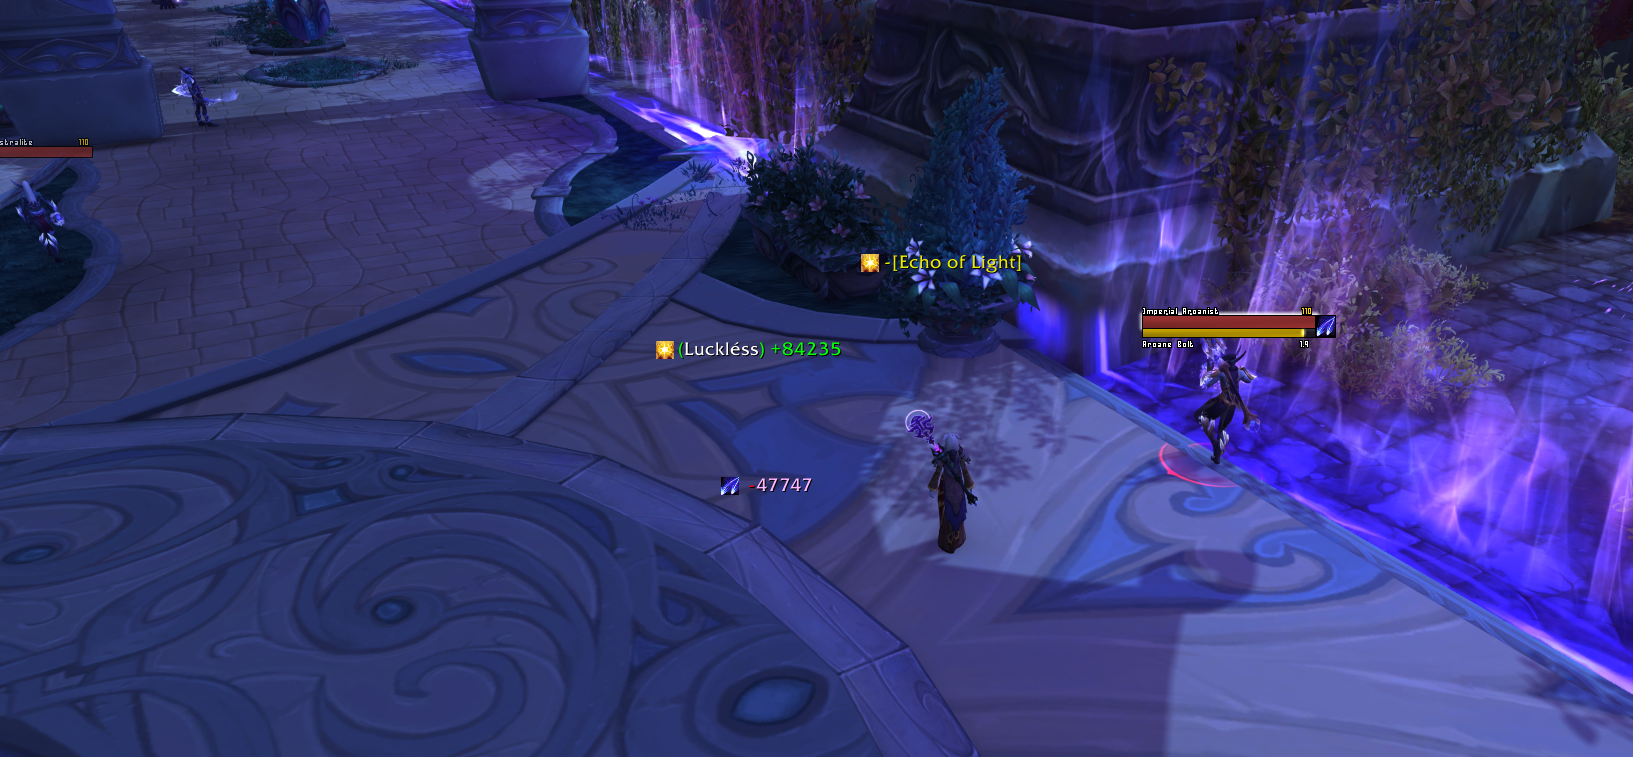 This Npc Followed Me All The Way From Moon Guard Stronghold To